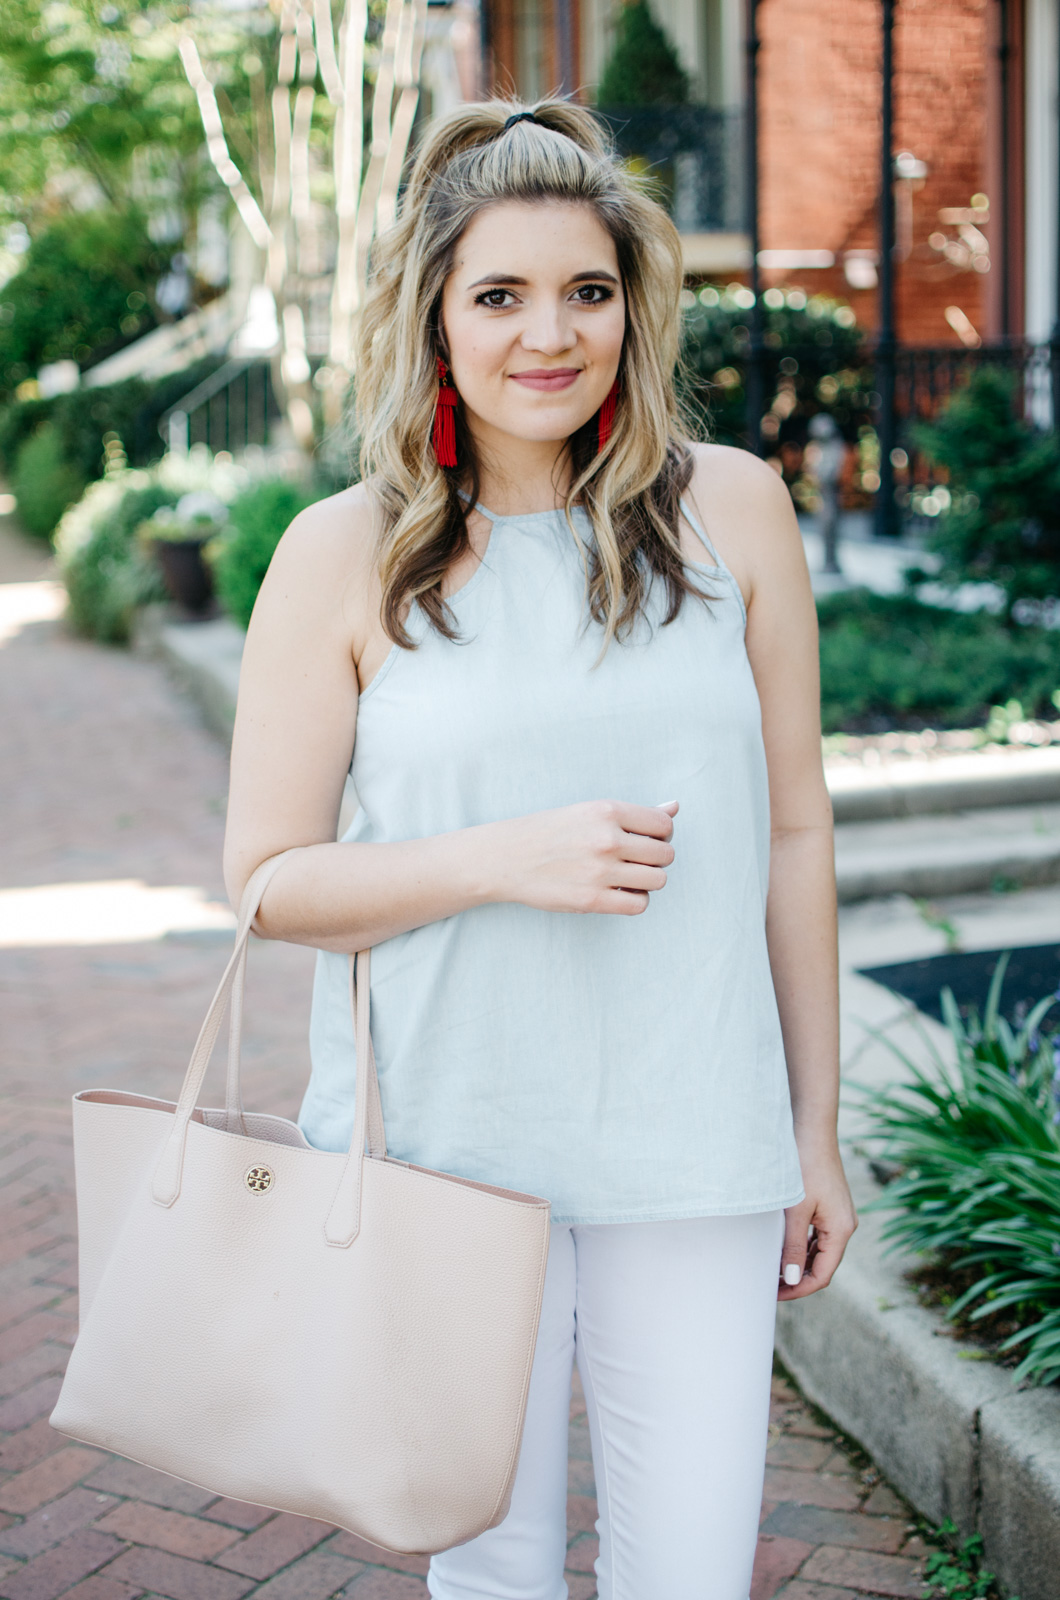 favorite spring outfit - white jeans and chambray | | For more cute spring outfit ideas, head to bylaurenm.com!